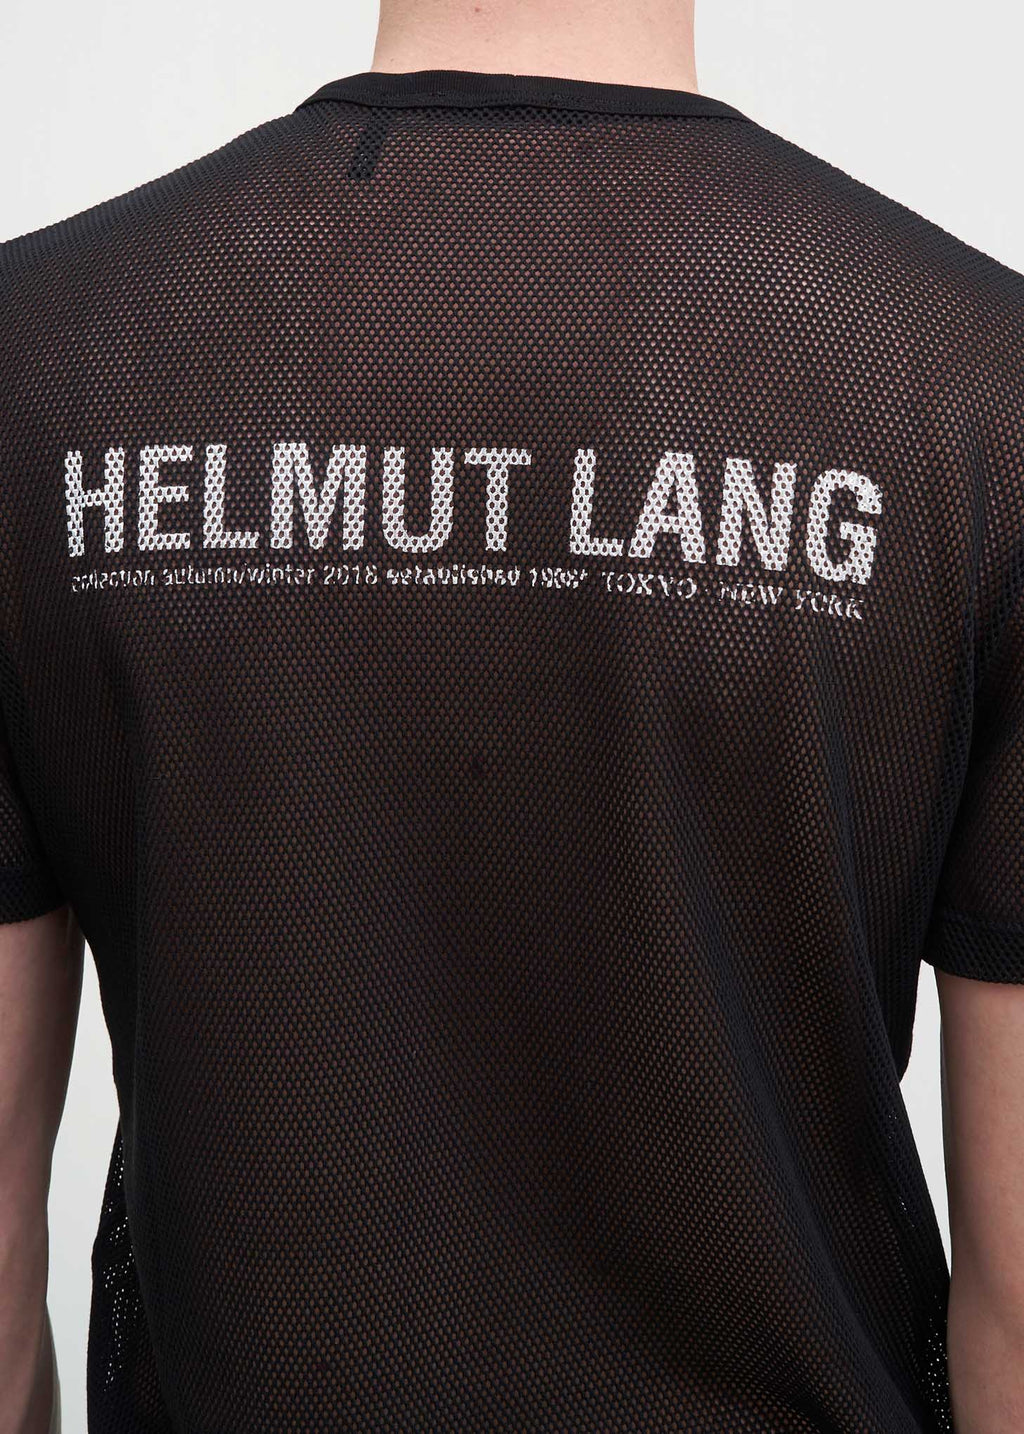 Helmut Lang, Black Logo Mesh T-Shirt, 017 Shop